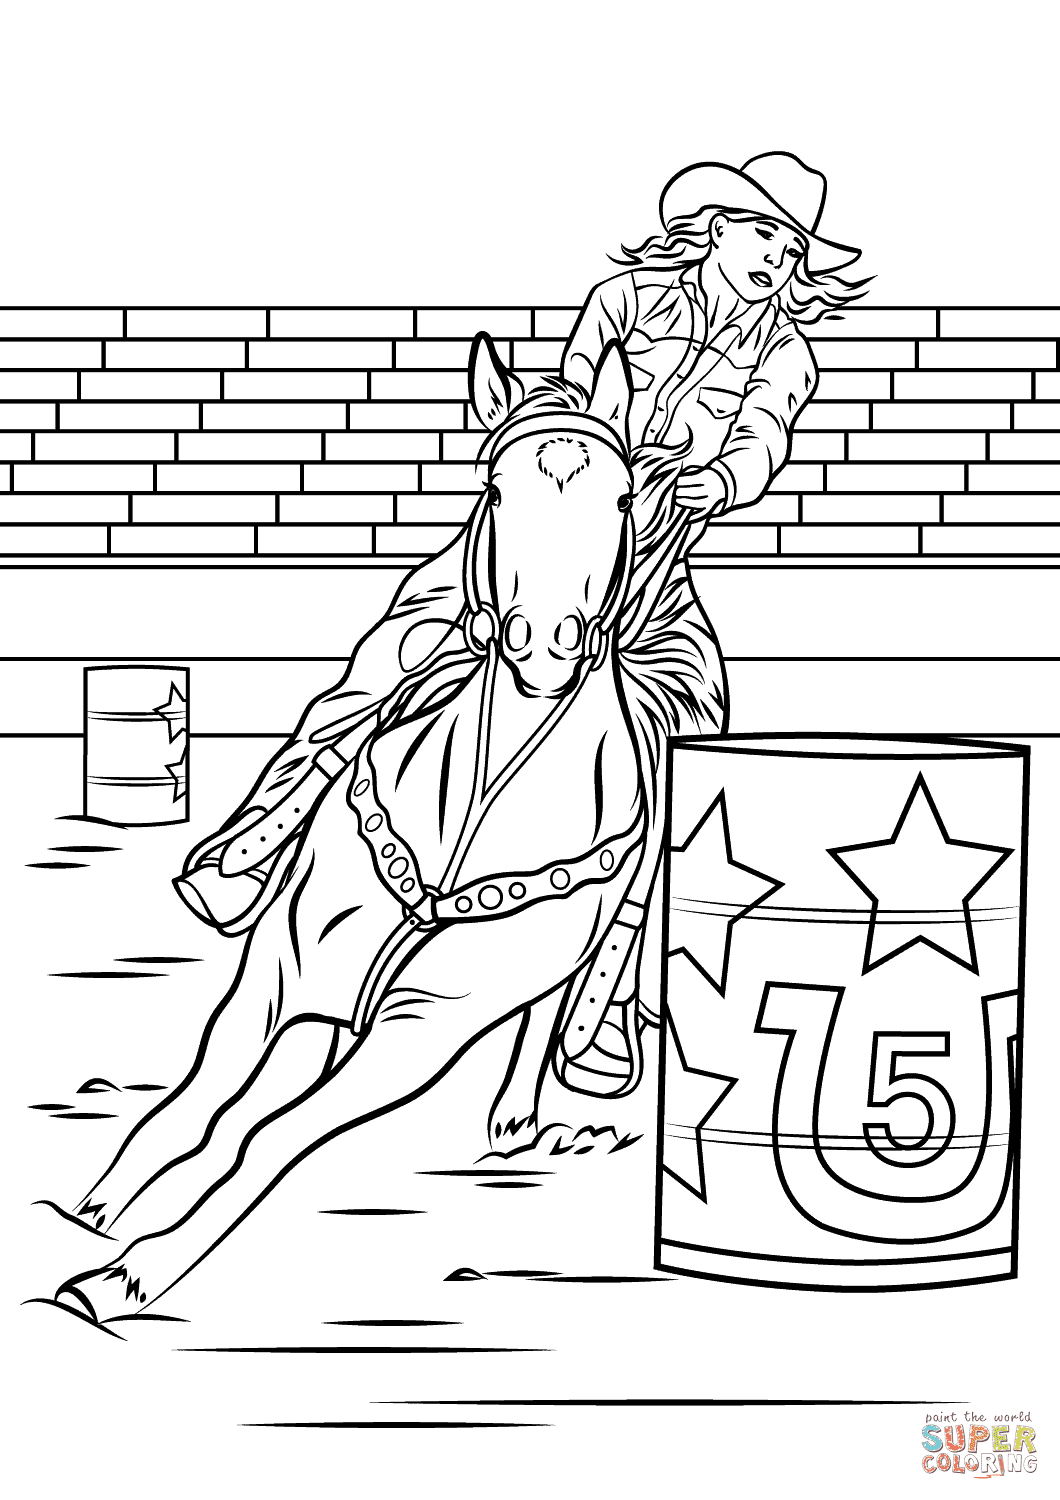 Horse Barrel Racing coloring page | Free Printable ...